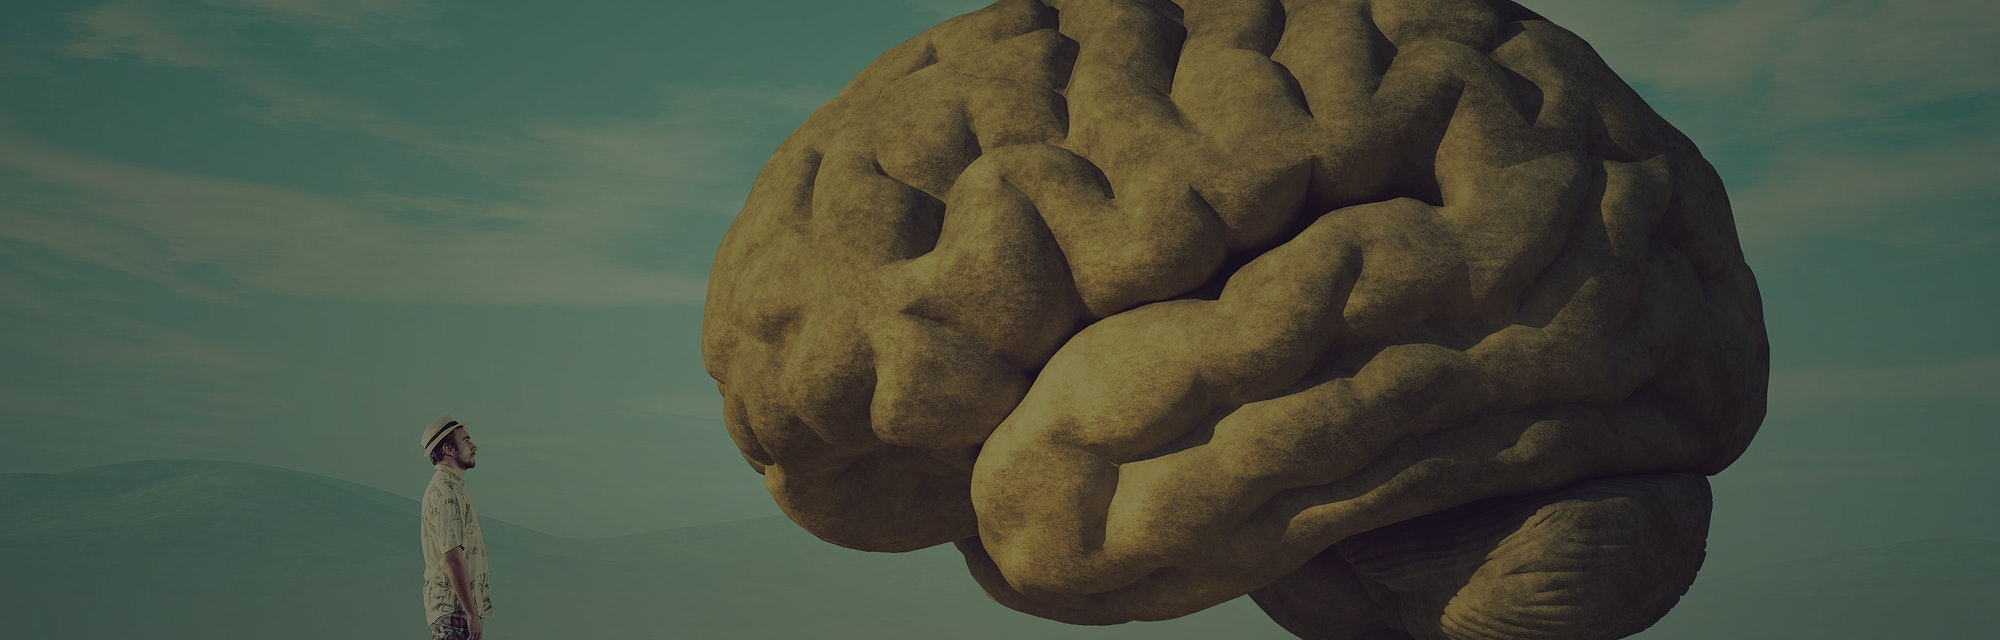 The young and conceptual image of a large stone in the shape of the human brain.